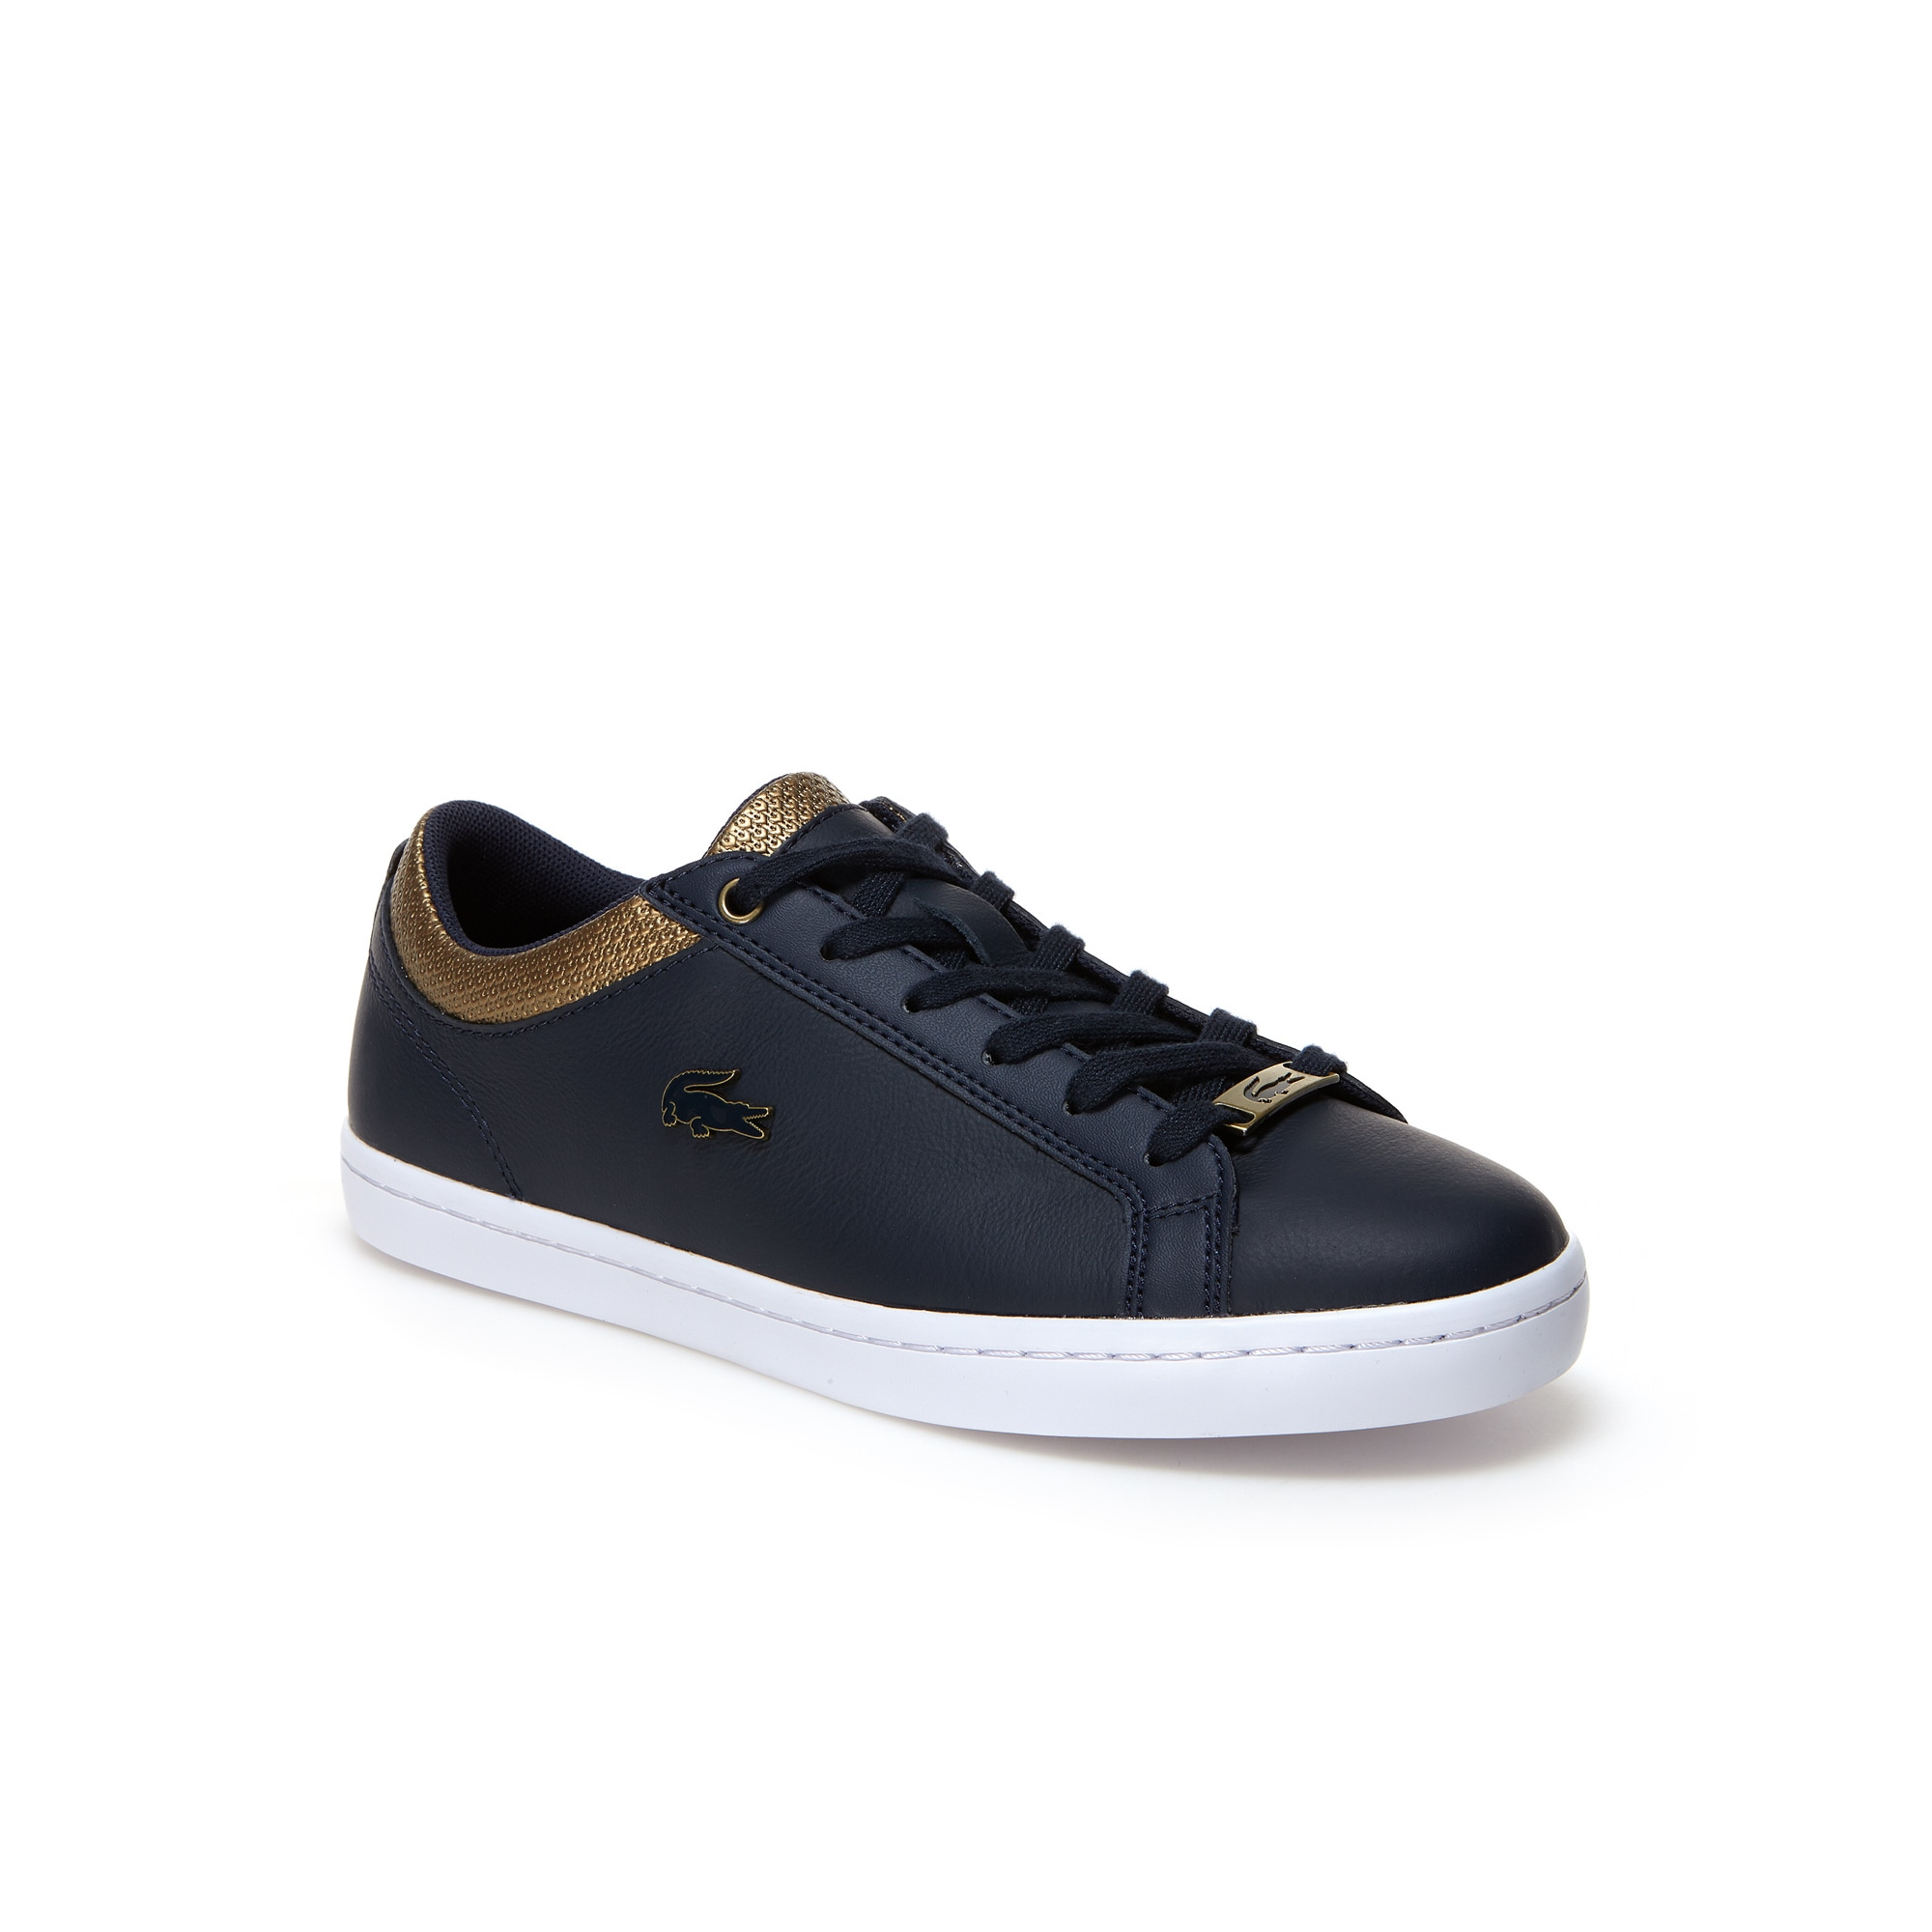 Women's Straightset Tumbled Leather Trainers